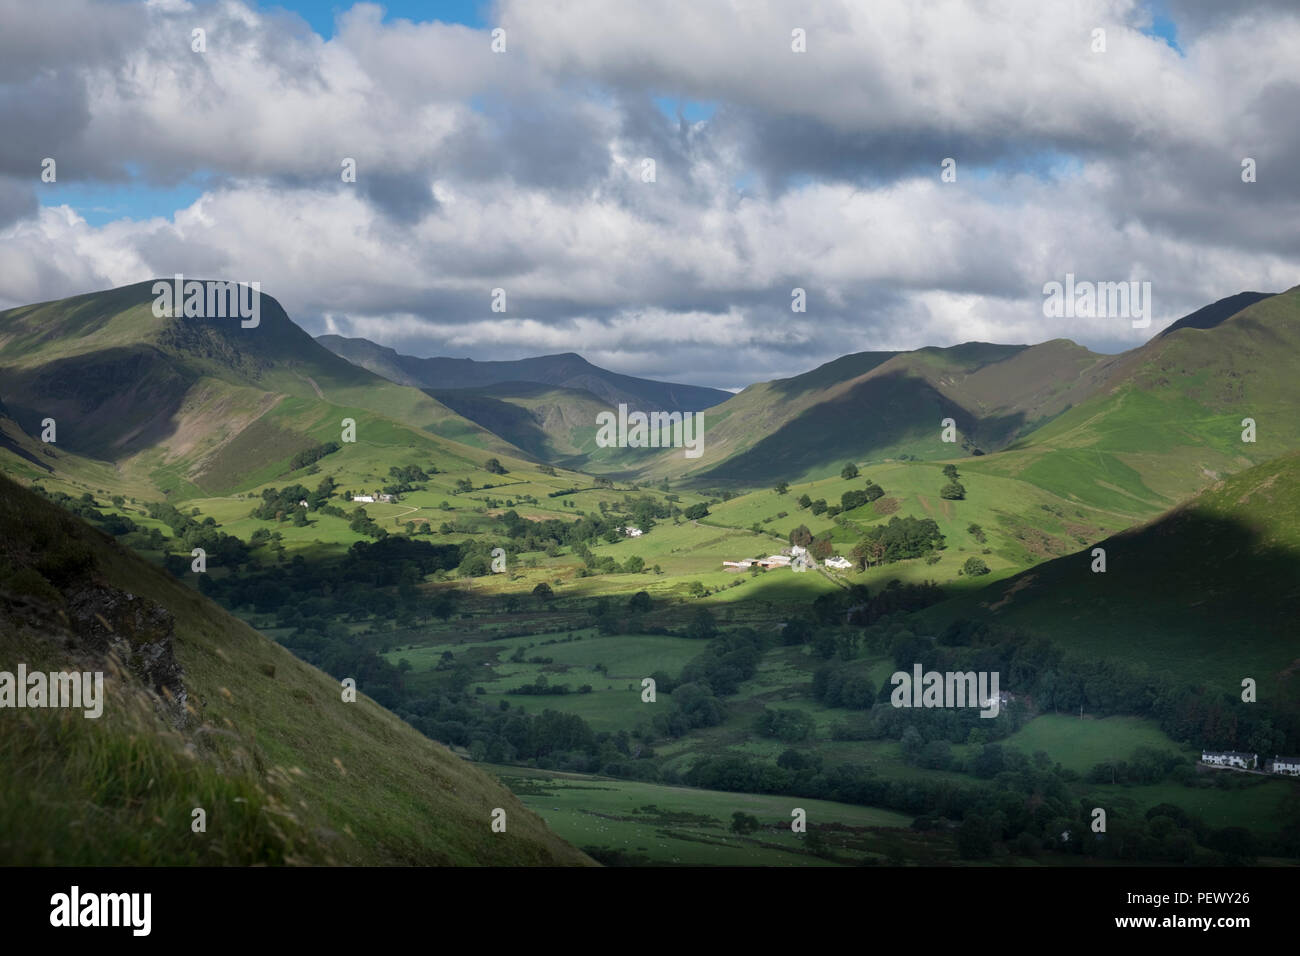 View of Newlands Valley from Cat Bells, Keswick, Lake District, England, UK Stock Photo